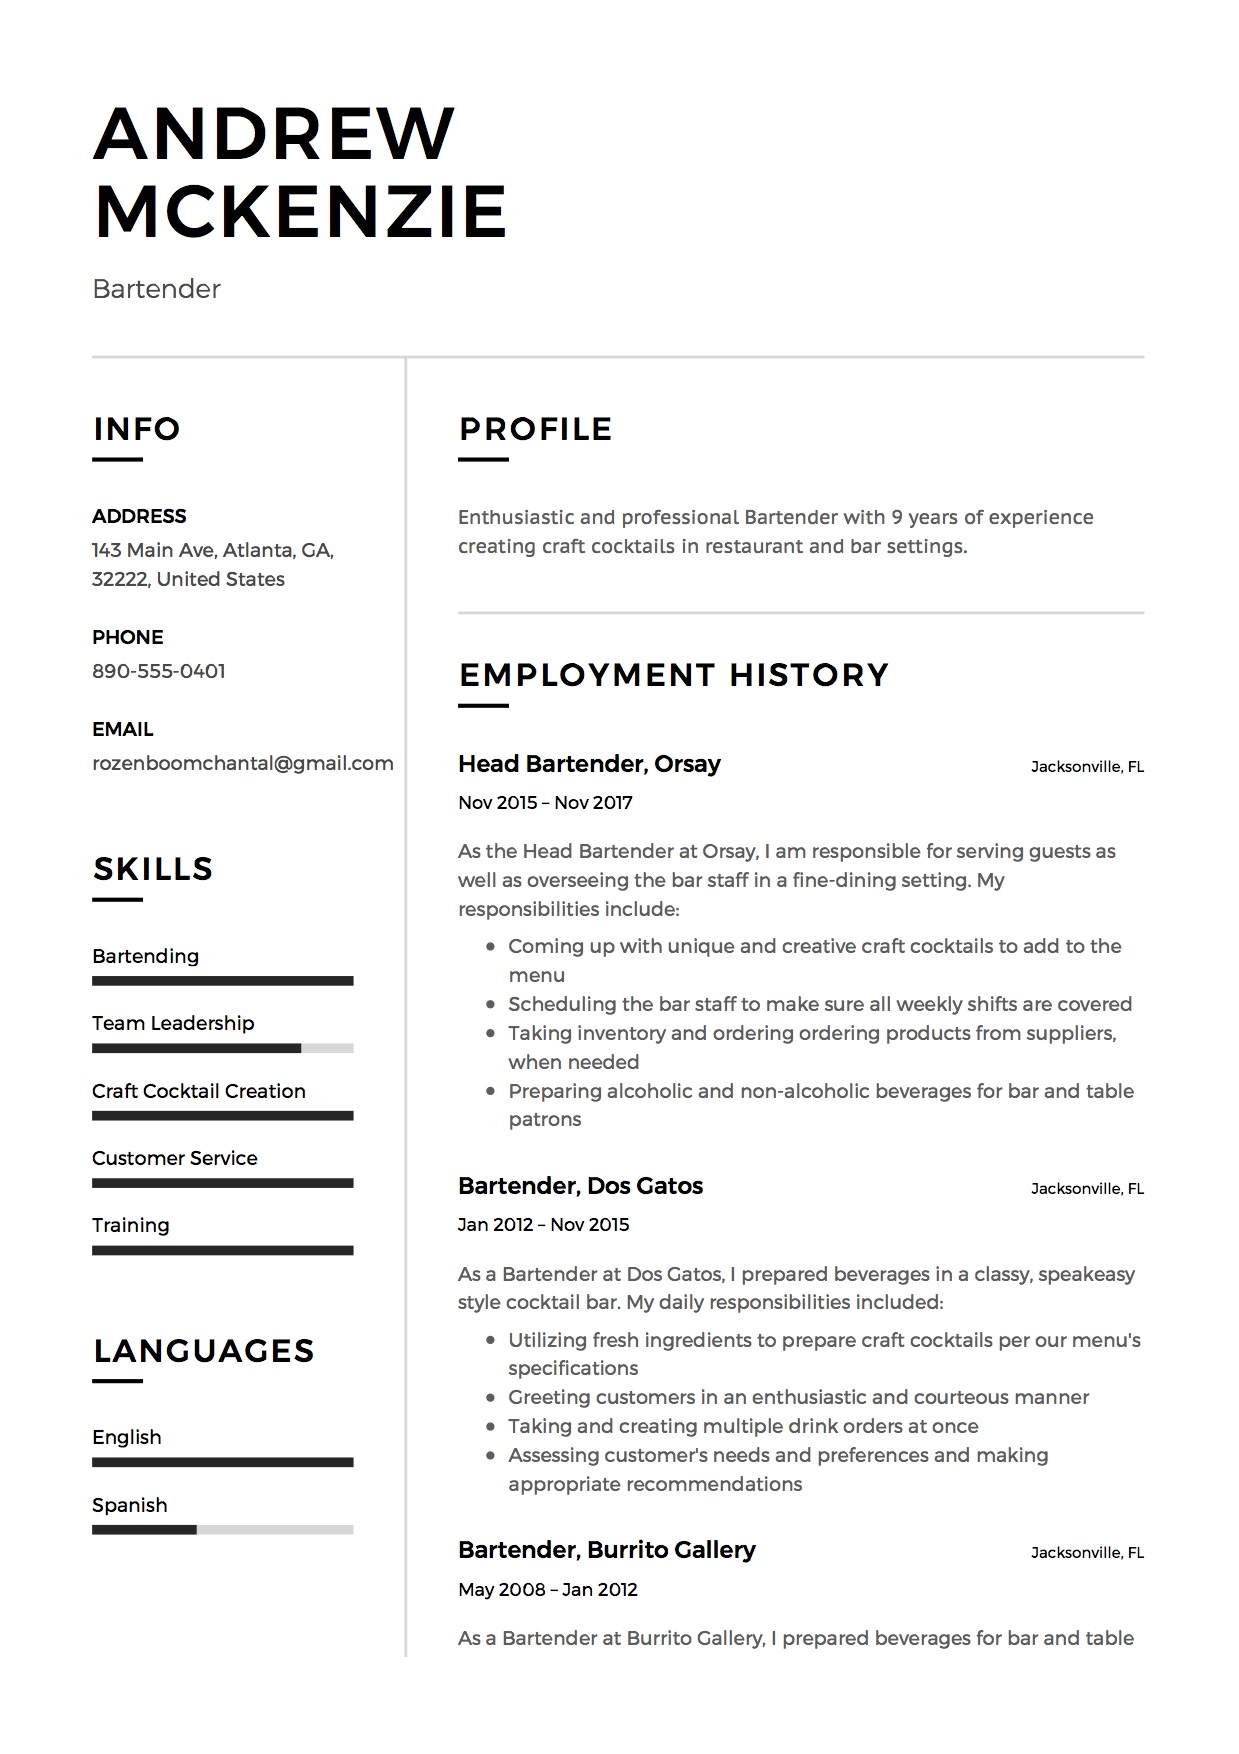 12 Bartender Resume Sample(s) - 2018 (Free Downloads)